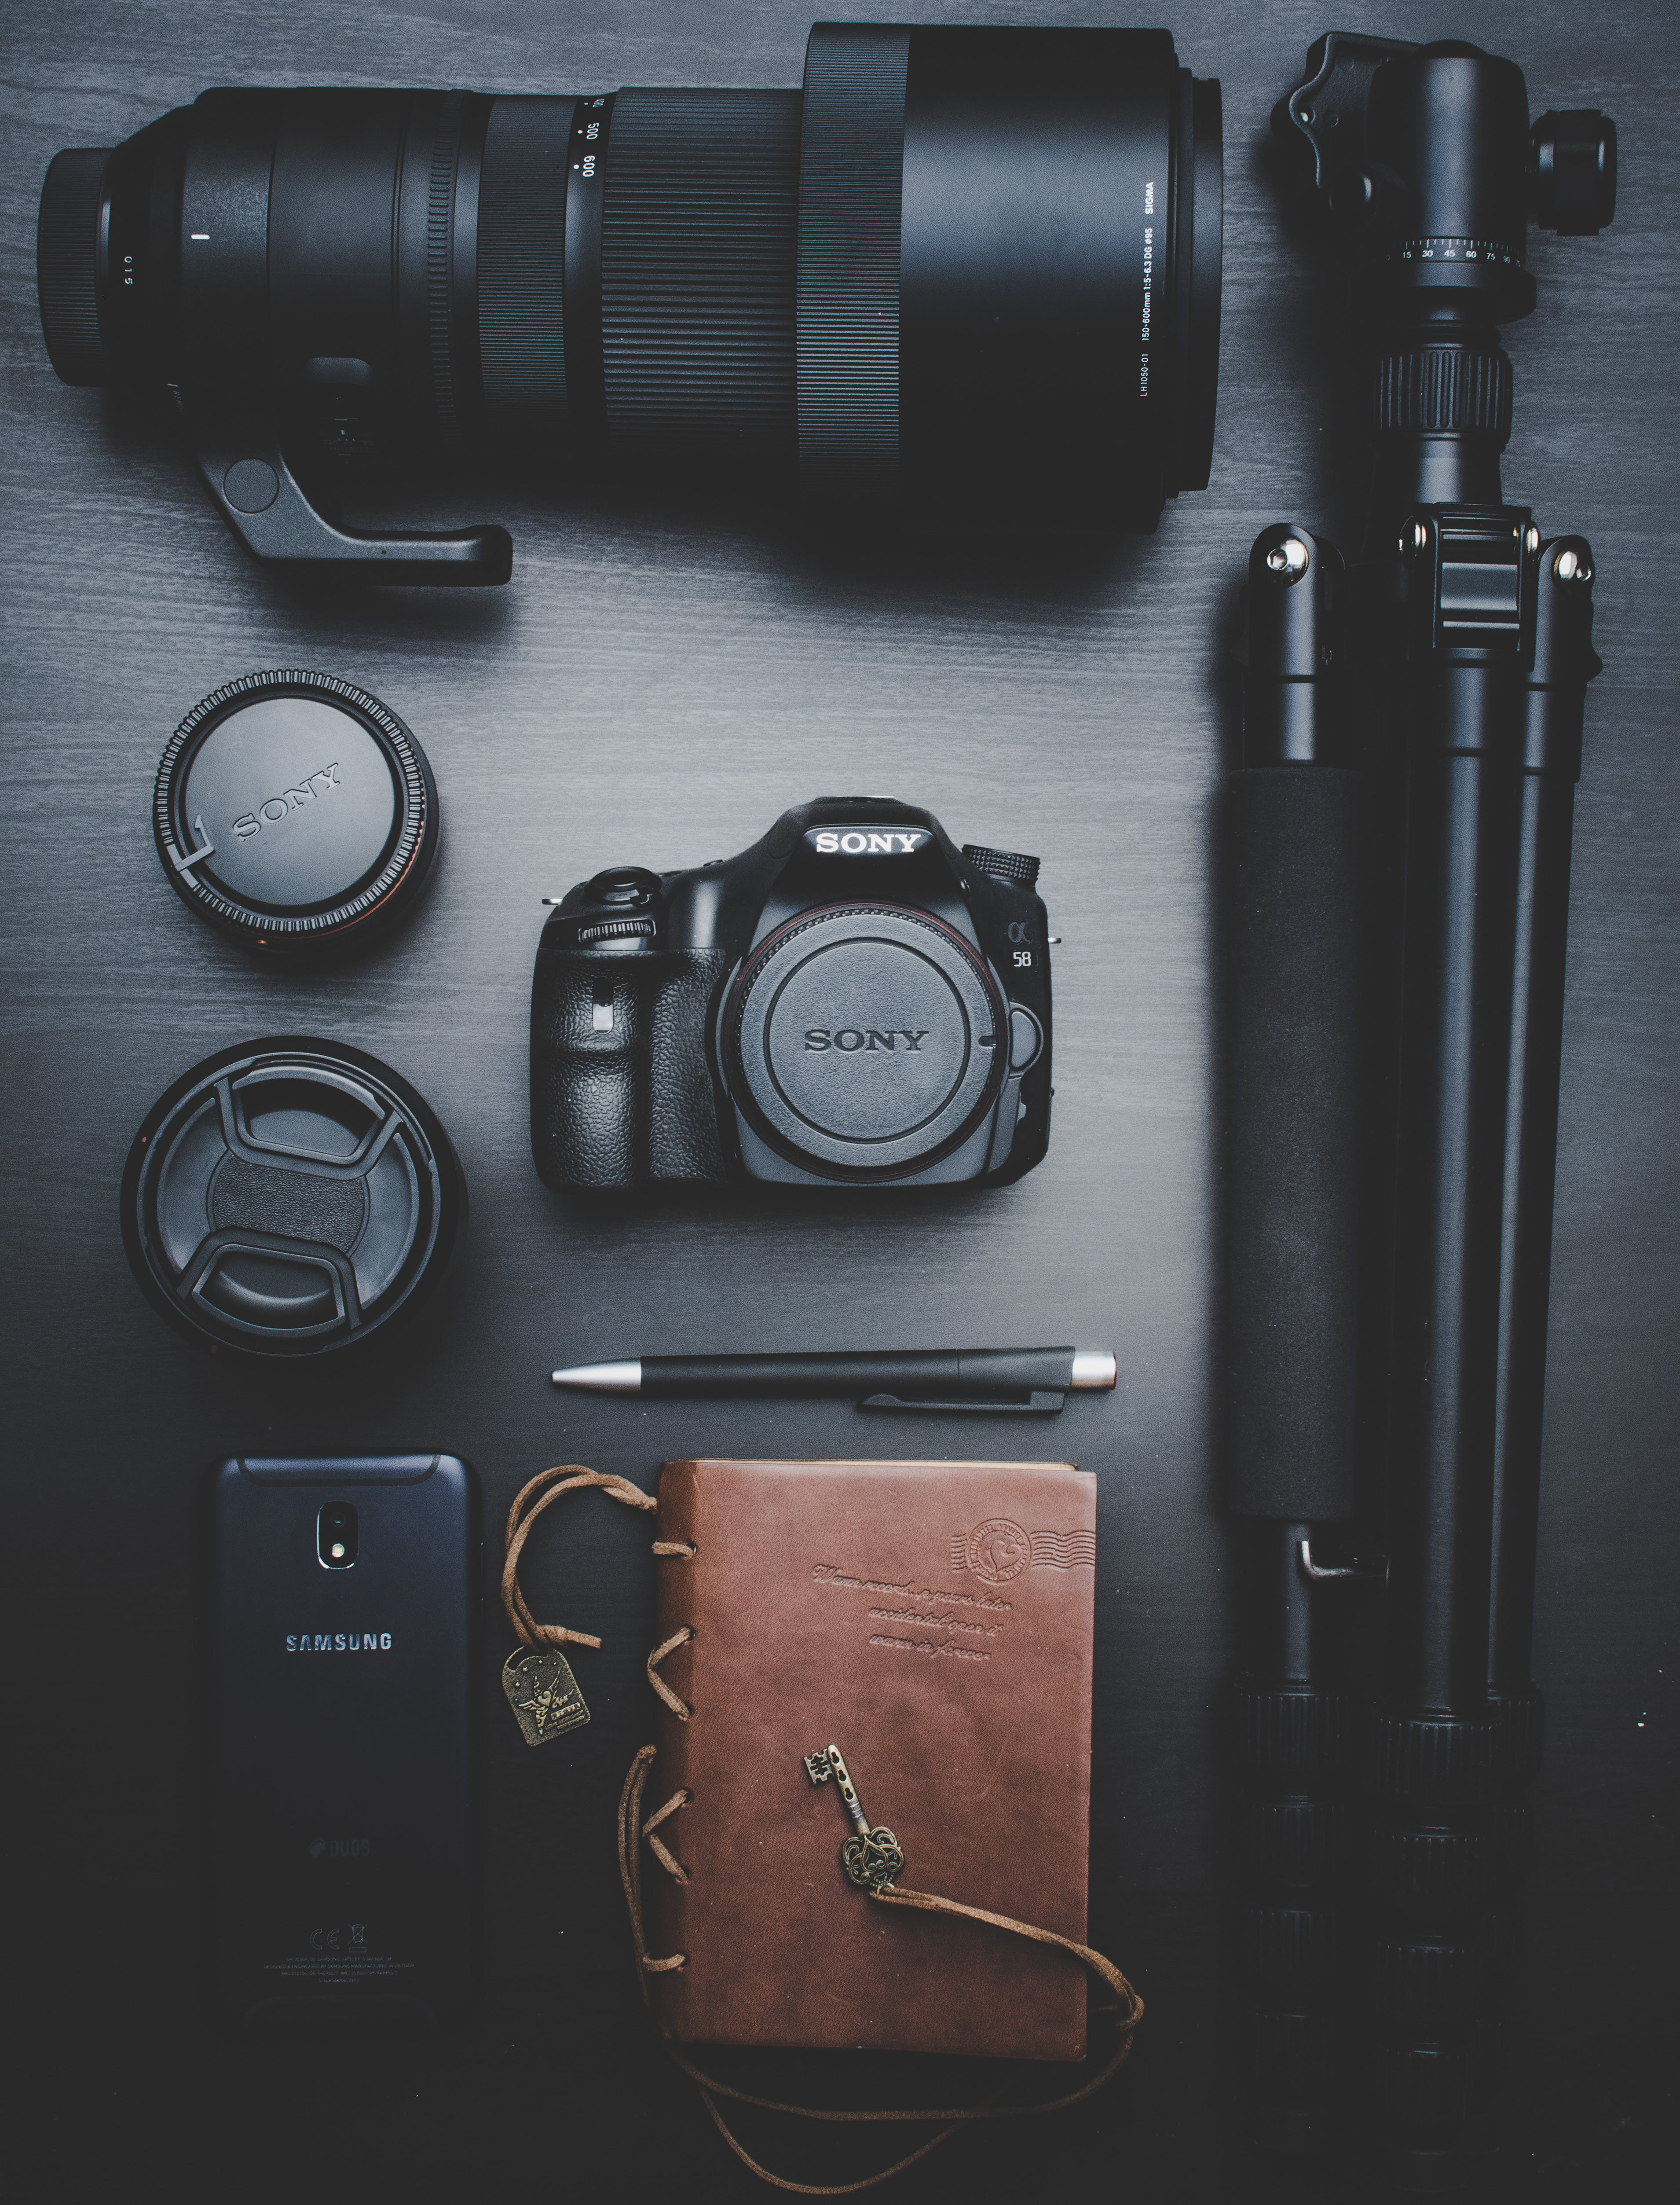 Black Sony Dslr Camera With Telephoto Lens and Tripod